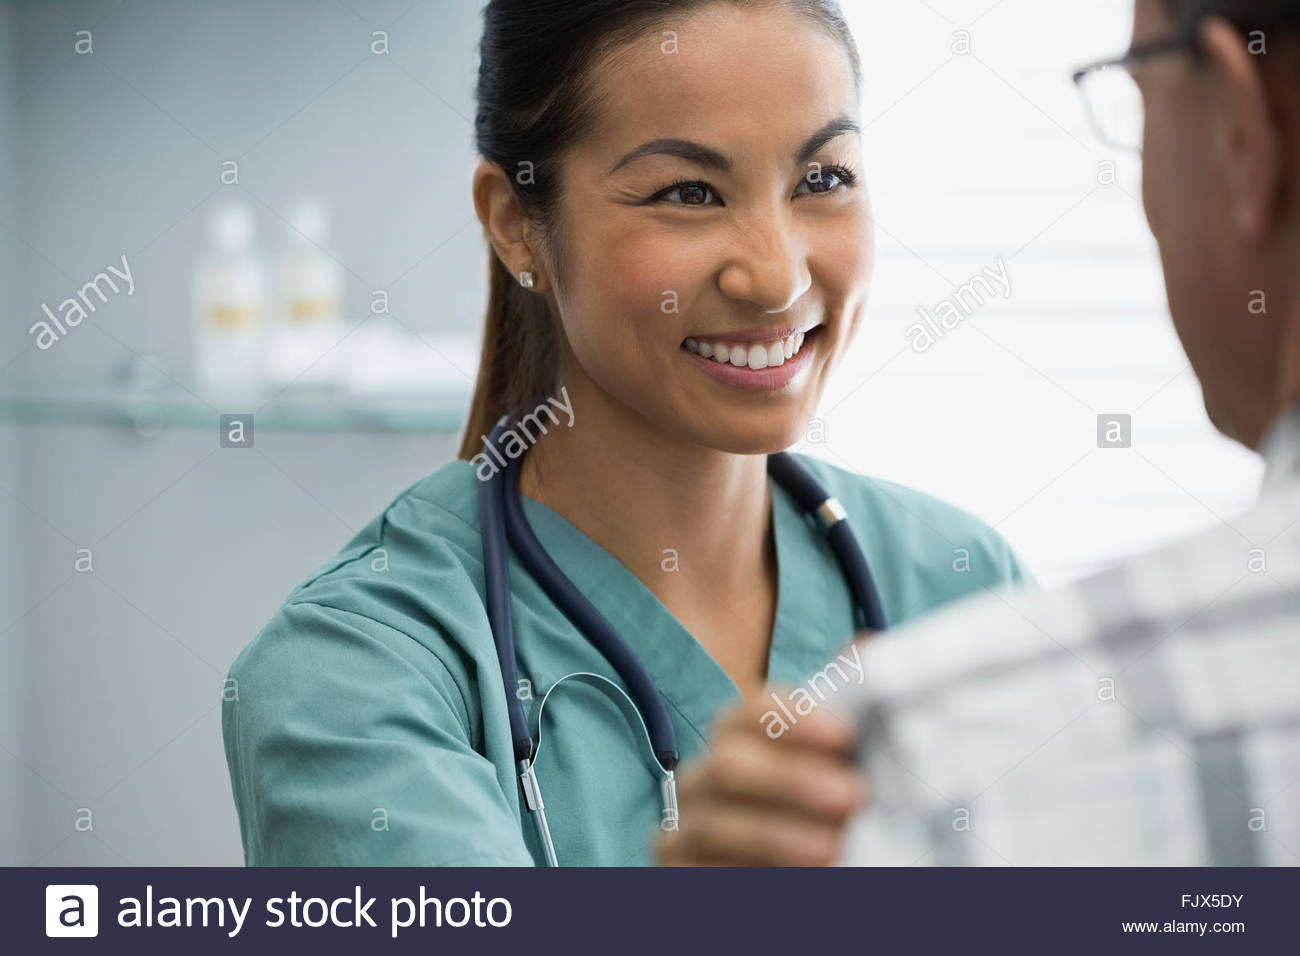 Smiling nurse patient réconfortant Photo Stock